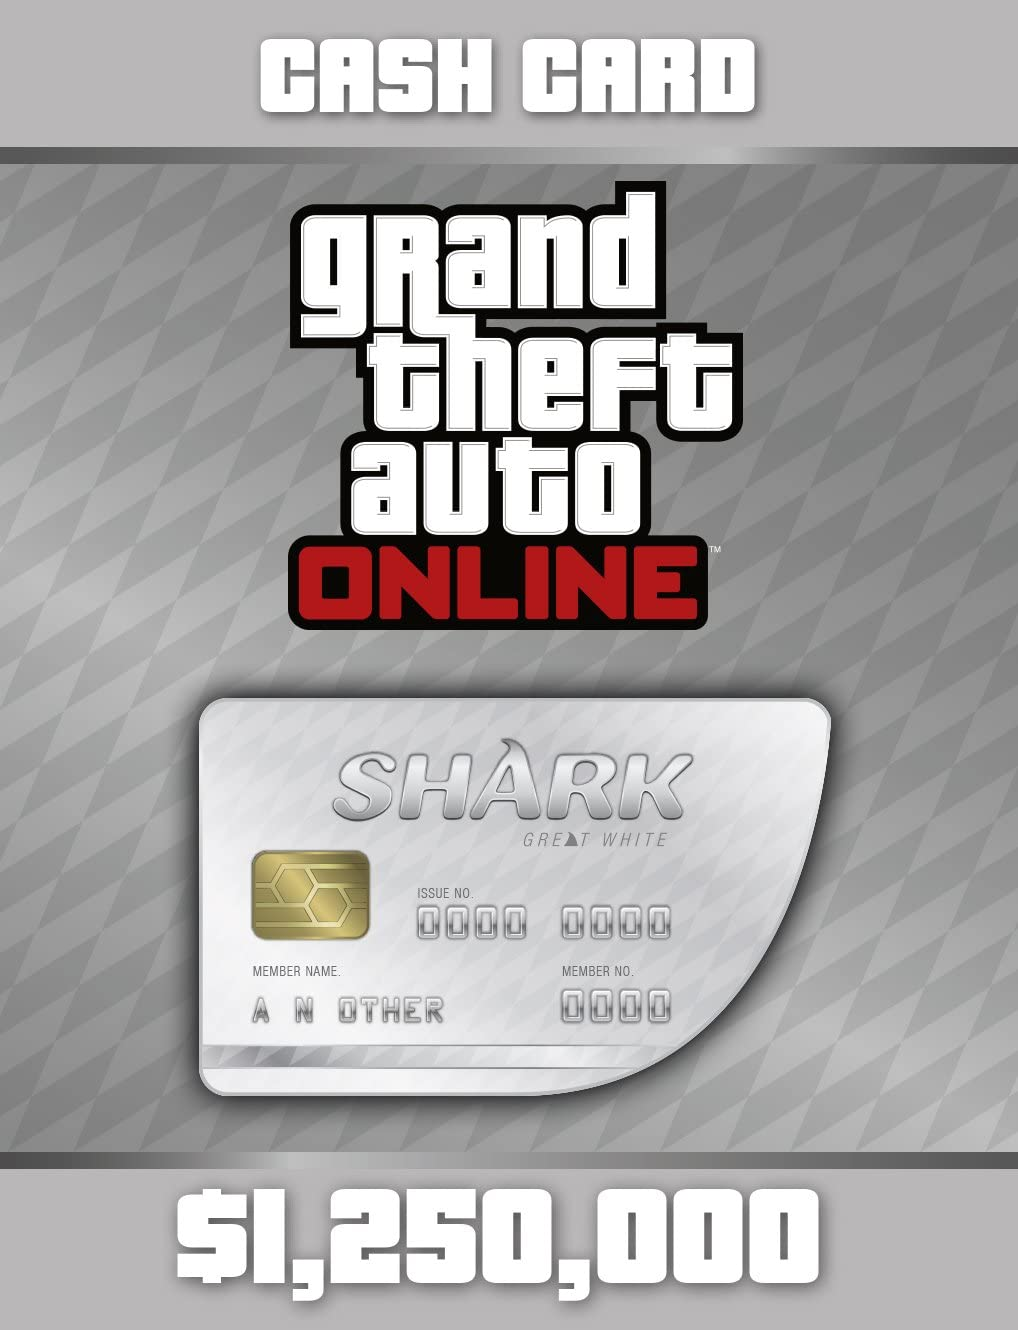 Amazon Com Grand Theft Auto Online Great White Shark Cash Card Online Game Code Video Games